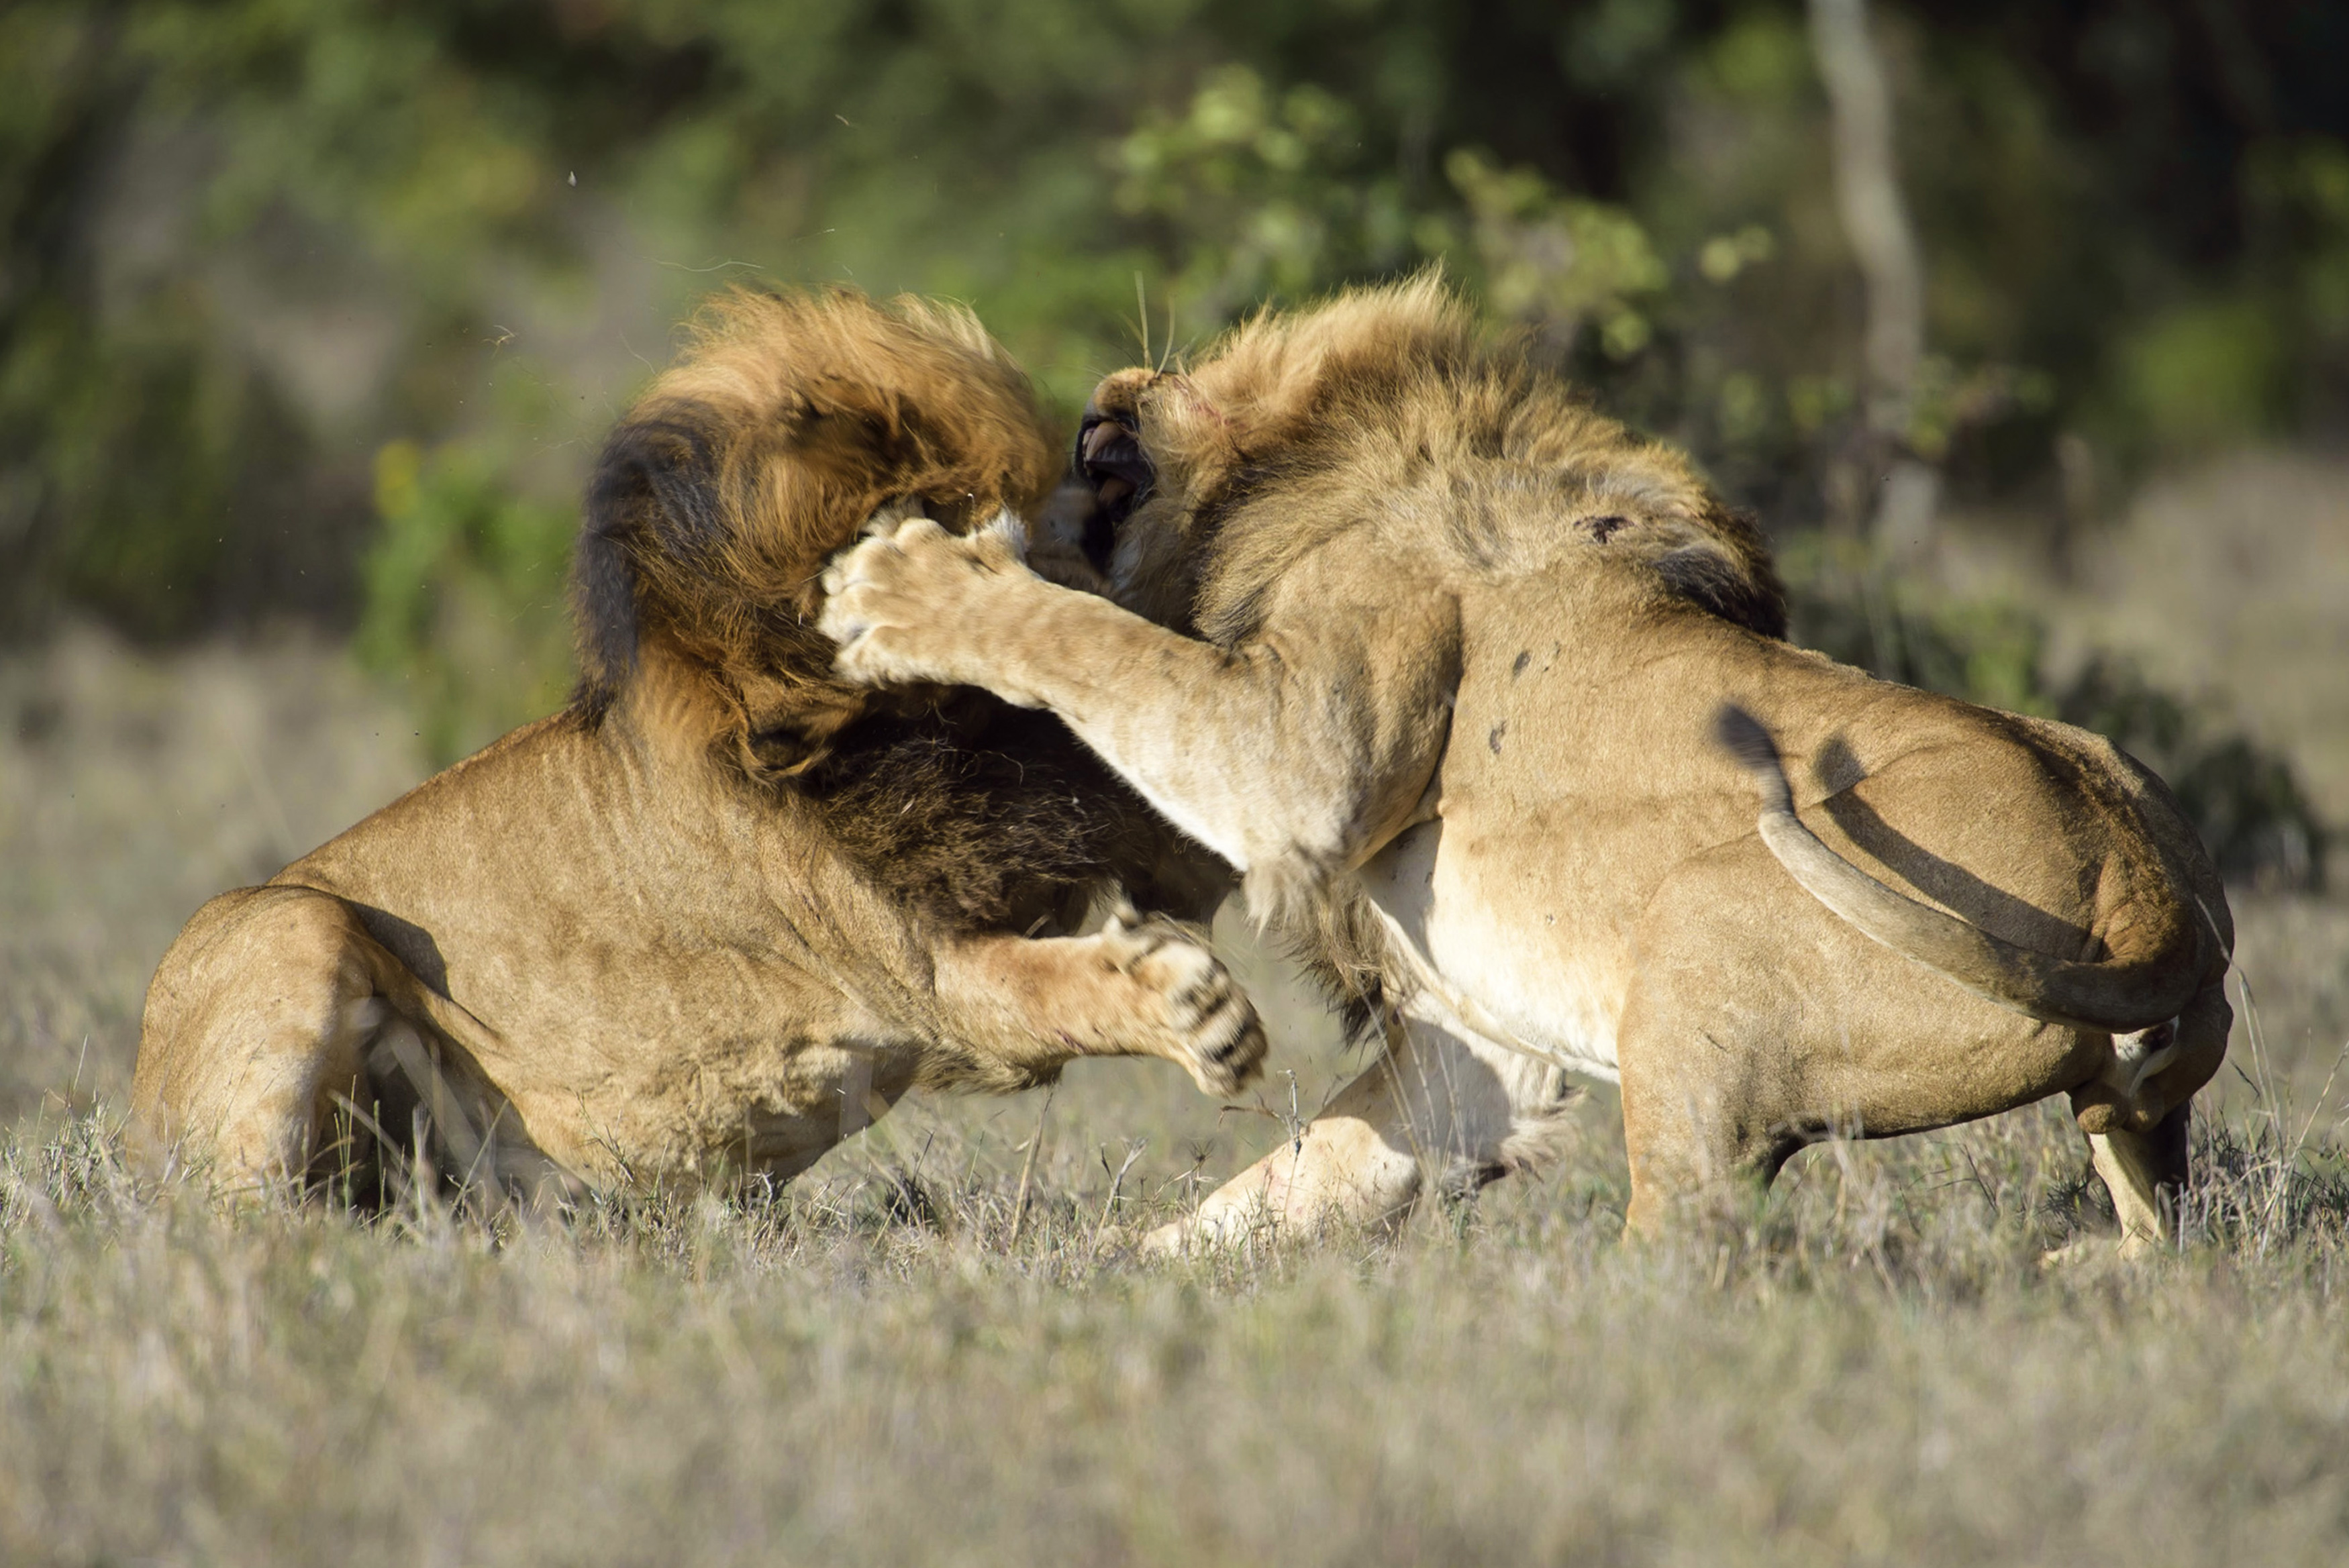 Lion fight with man - photo#16